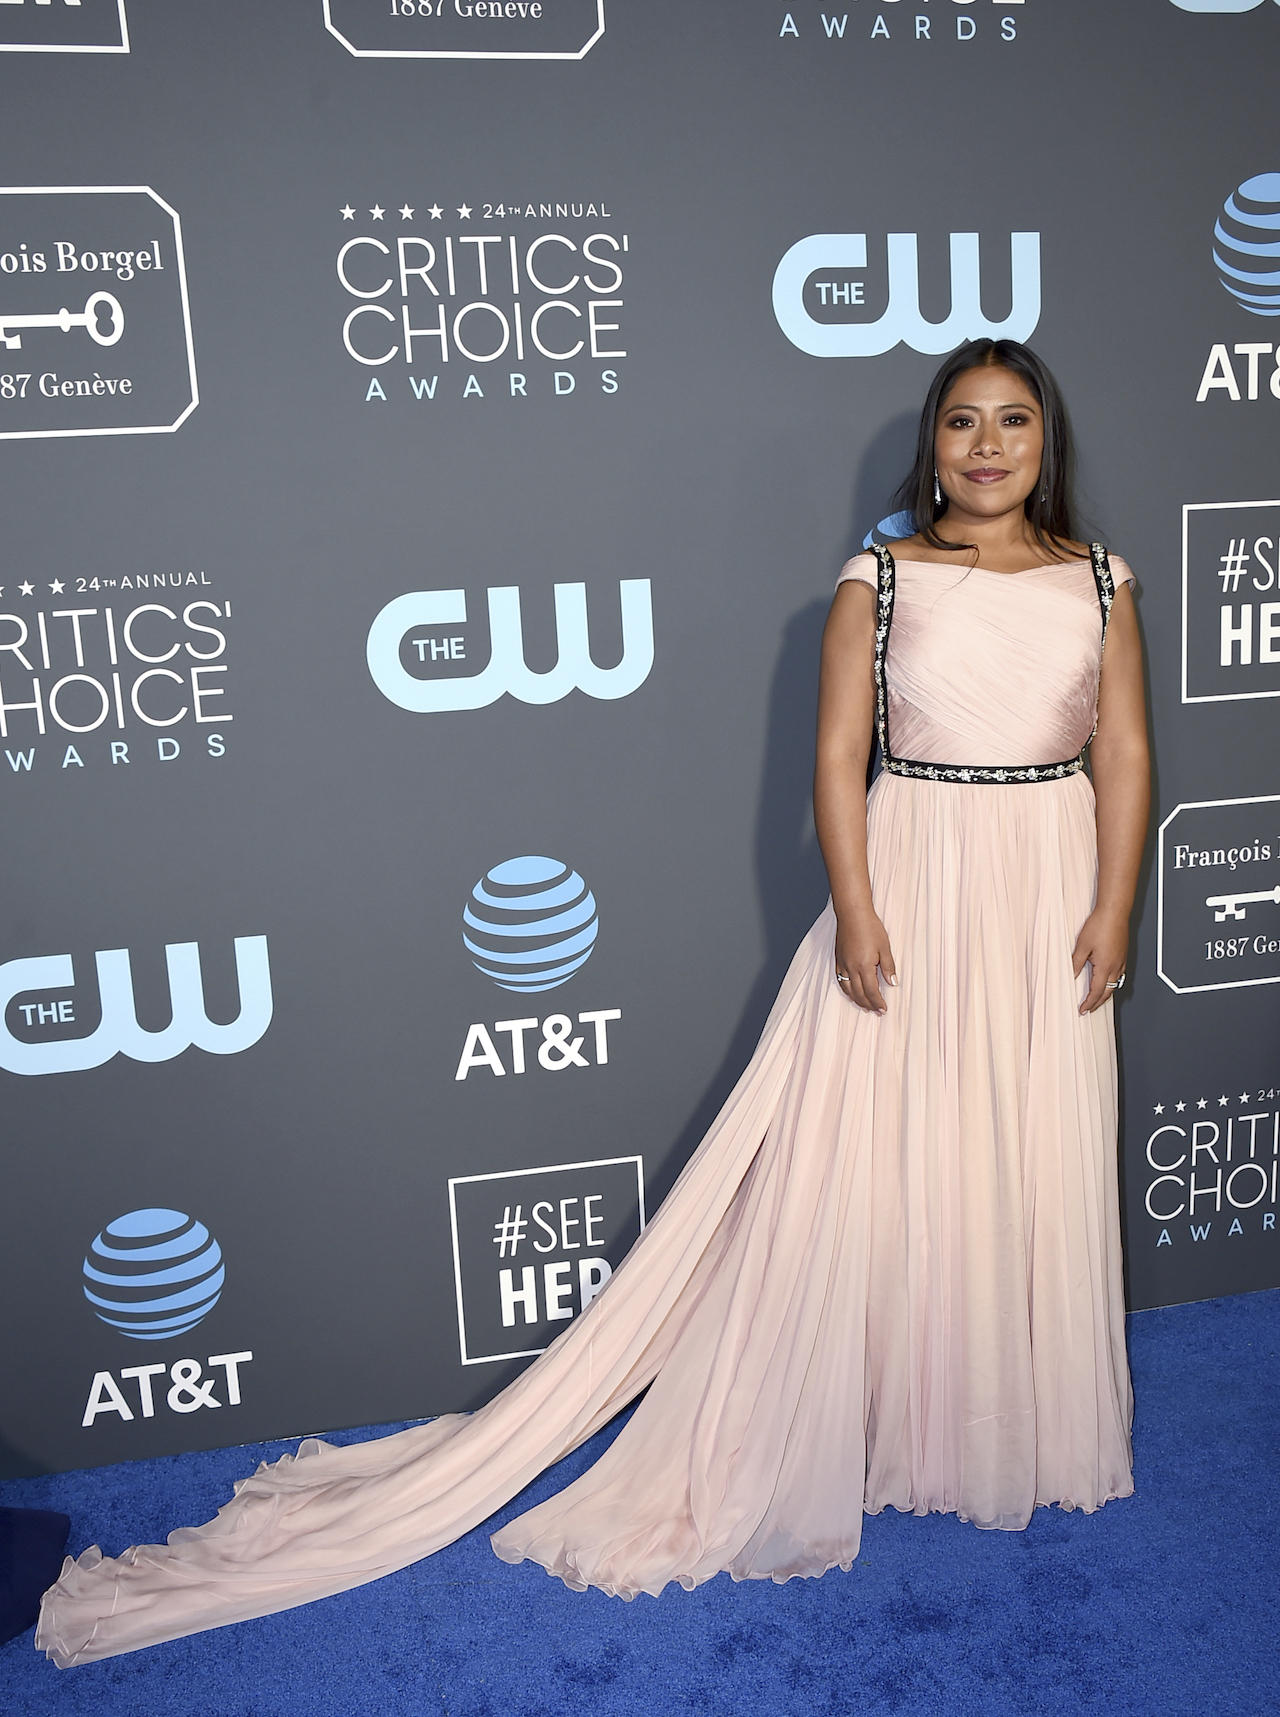 <div class='meta'><div class='origin-logo' data-origin='AP'></div><span class='caption-text' data-credit='Jordan Strauss/Invision/AP'>Yalitza Aparicio arrives at the 24th annual Critics' Choice Awards on Sunday, Jan. 13, 2019, at the Barker Hangar in Santa Monica, Calif.</span></div>